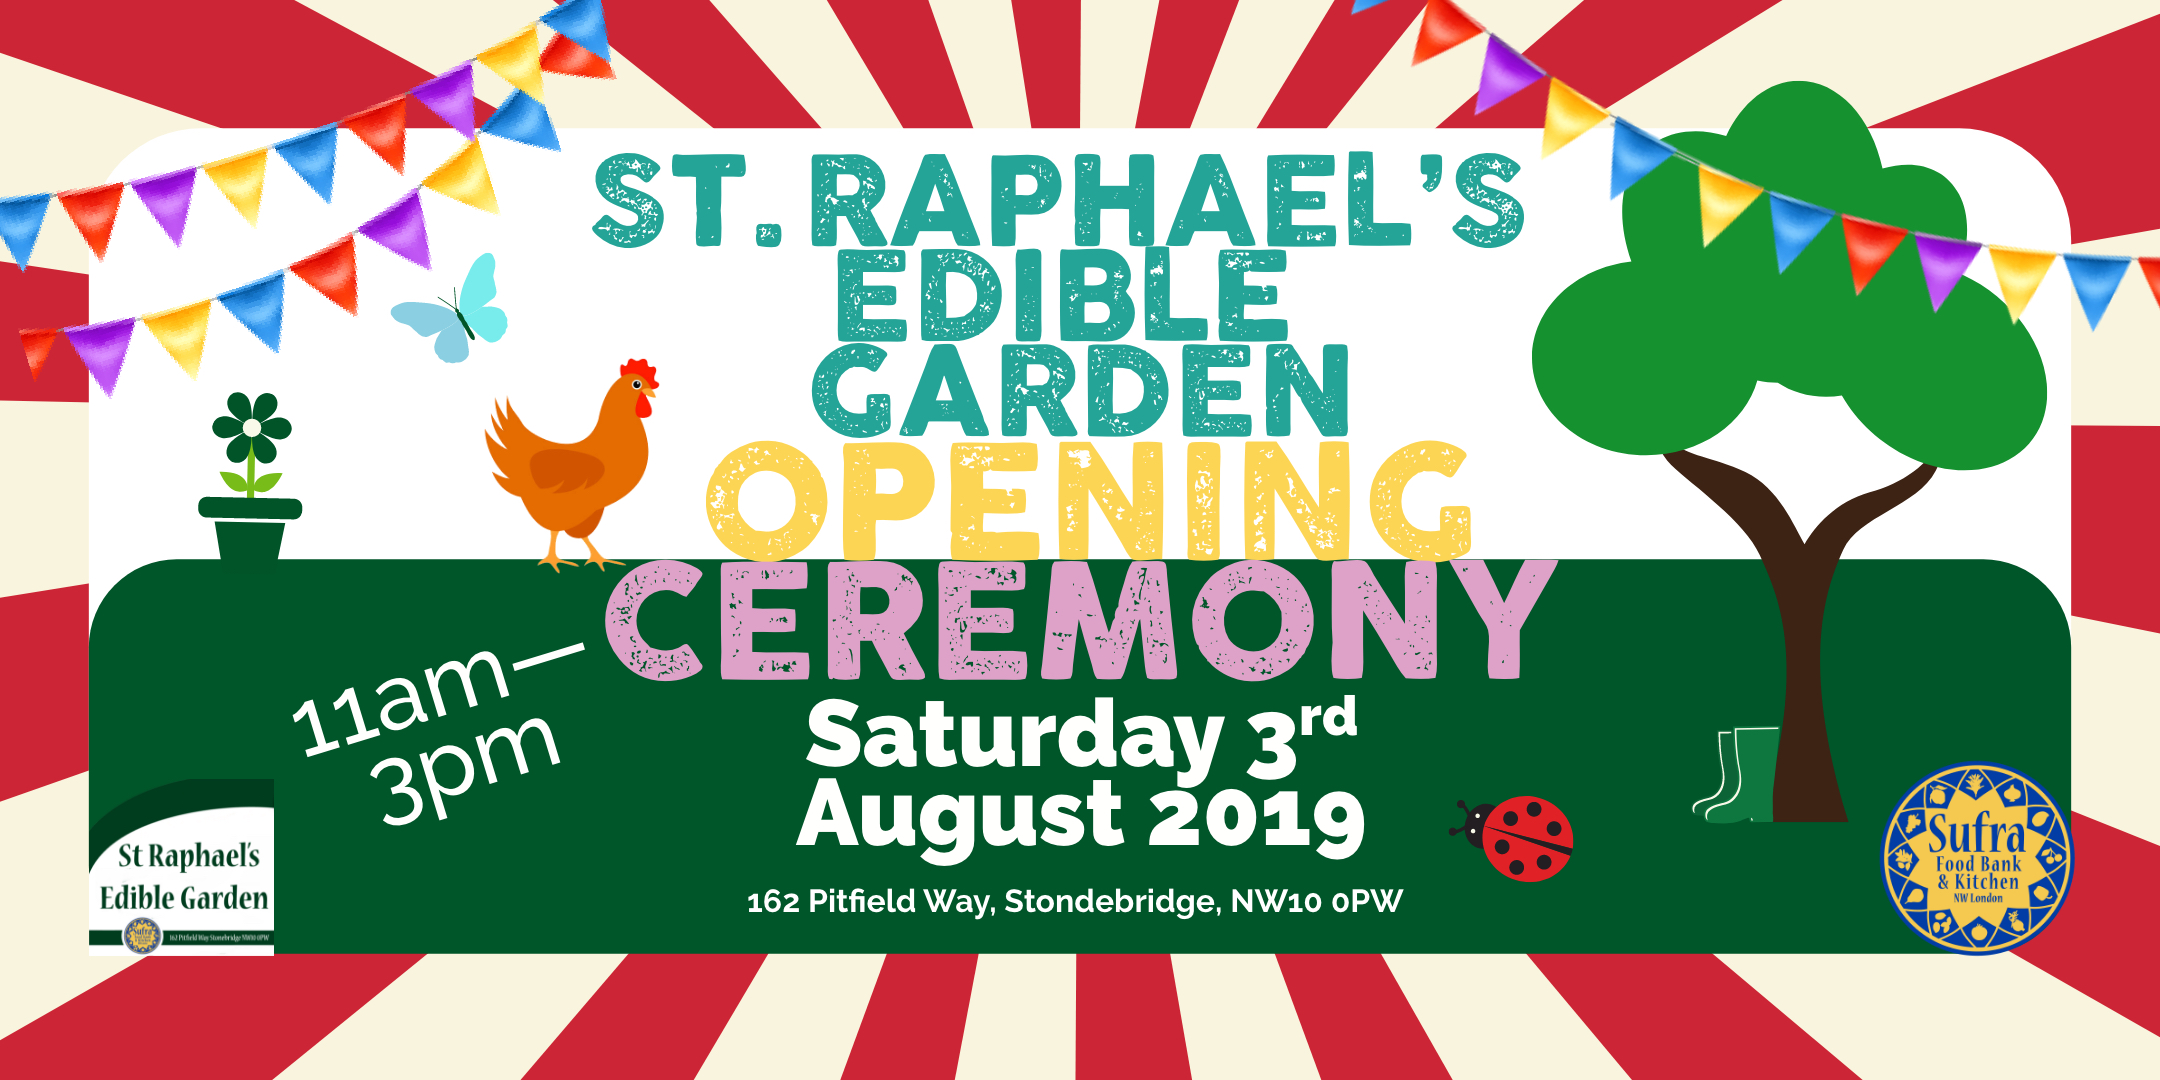 What's On: St Raphael's Edible Garden Opening Ceremony